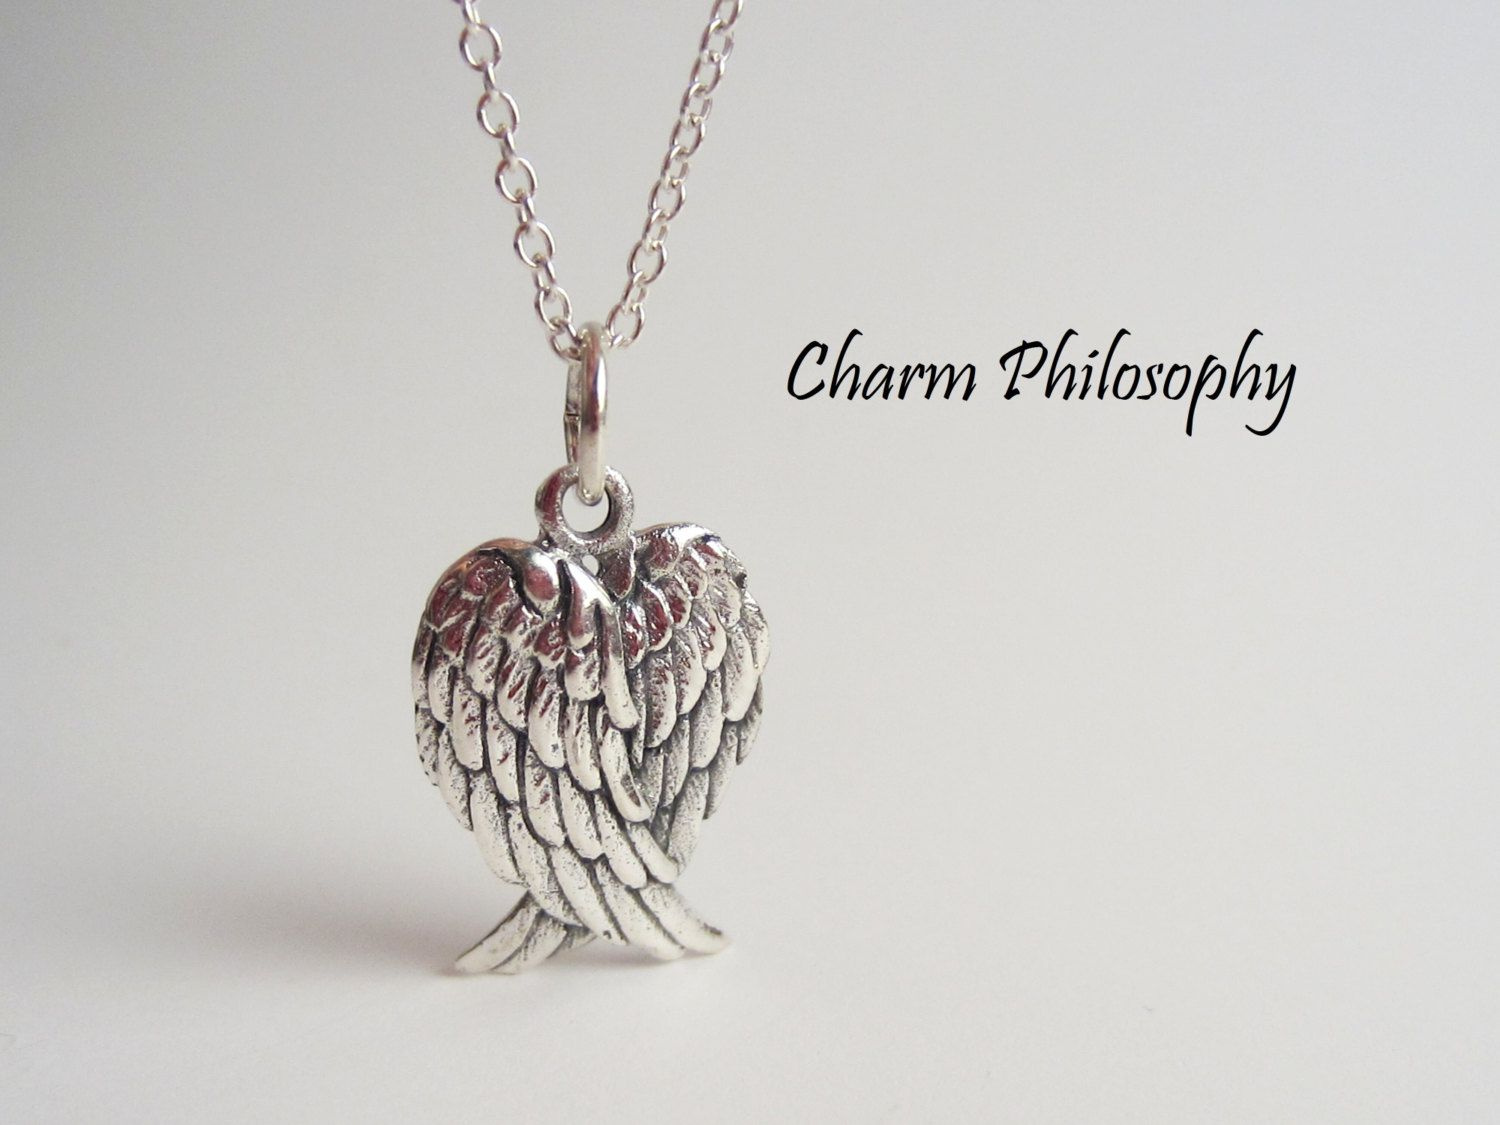 Angel wings necklace 925 sterling silver folded wings pendant angel wings necklace 925 sterling silver folded wings pendant griever necklace grief aloadofball Image collections